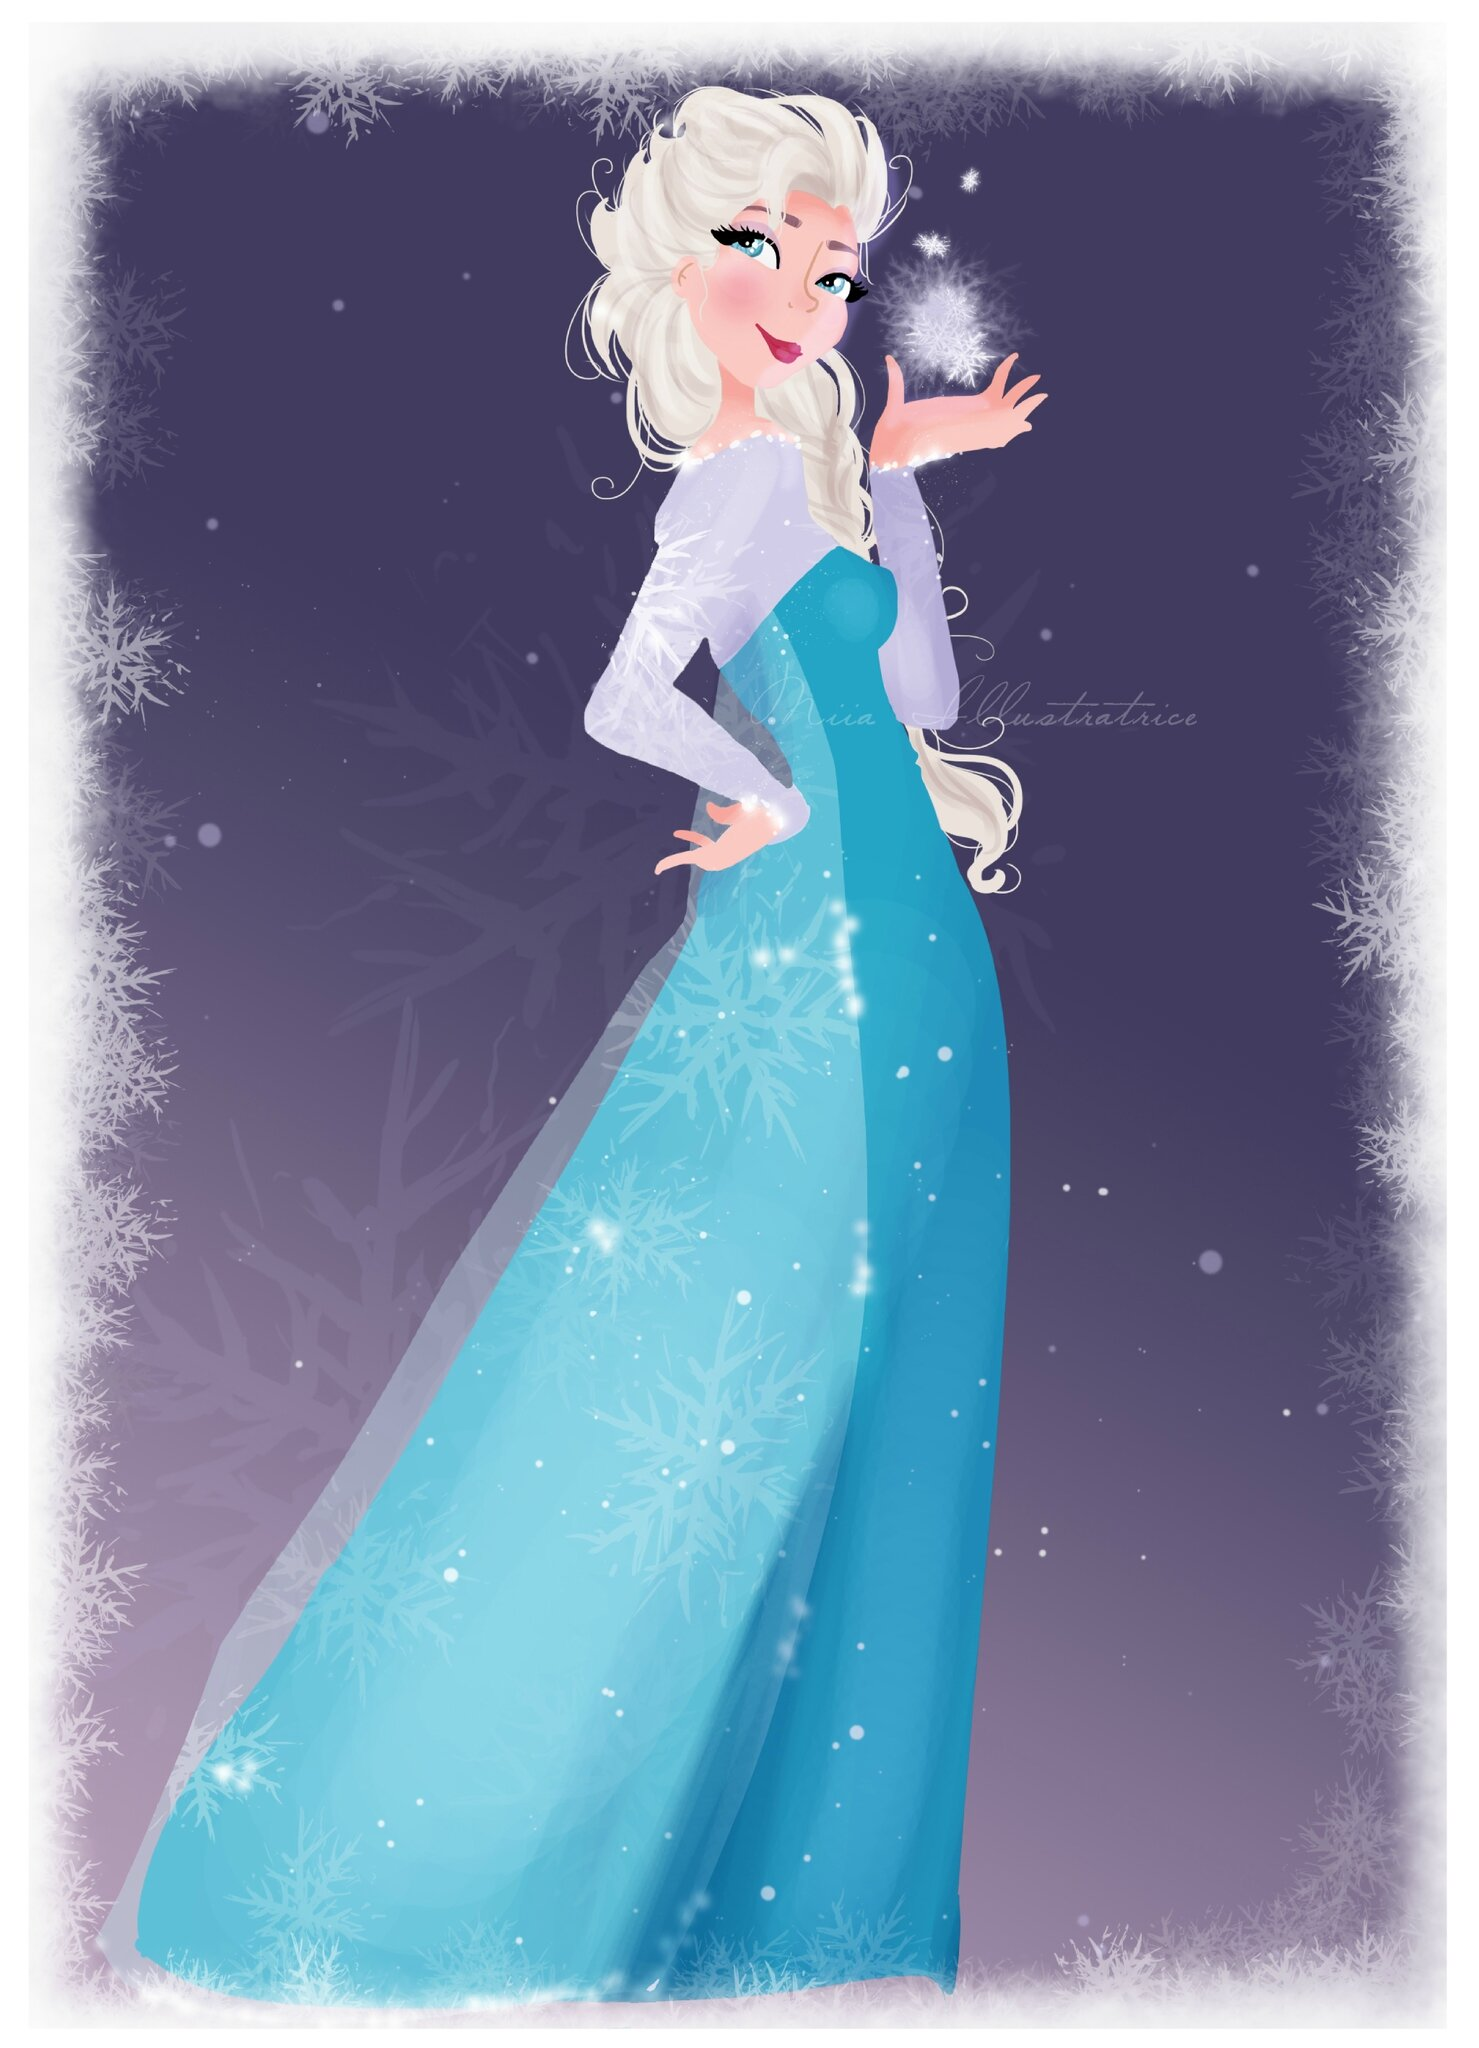 La reine des neiges elsa blog de miia illustratrice - Reine des neiges elsa ...